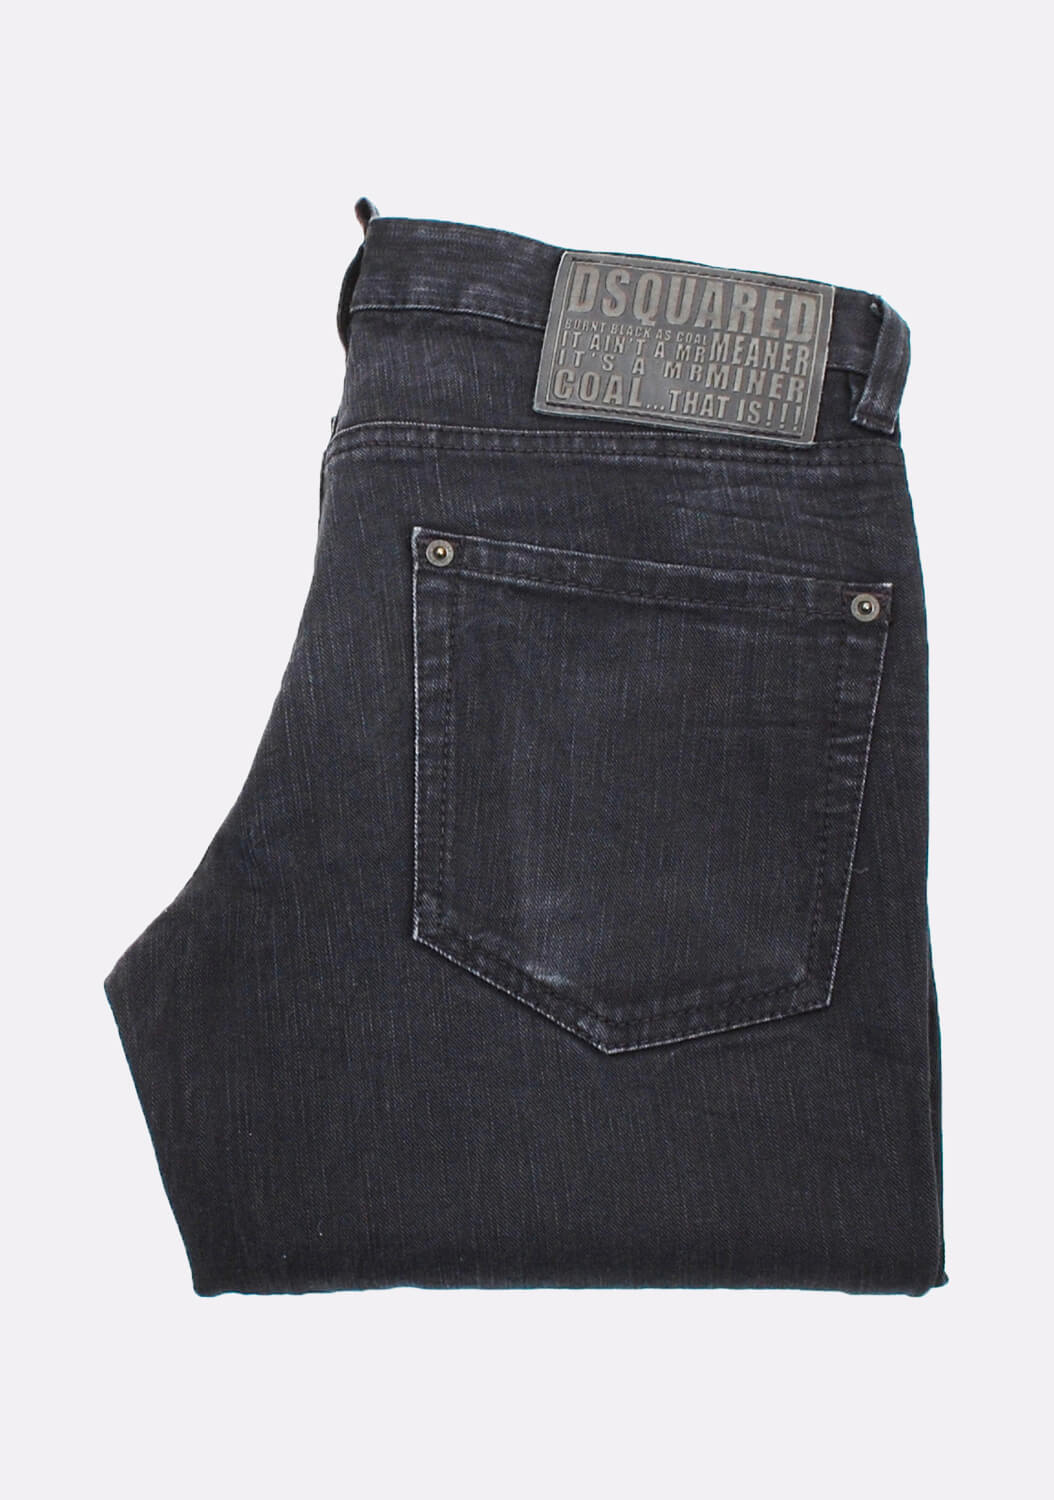 dsquared-dzinsai-46-slim-fit.jpg.jpg